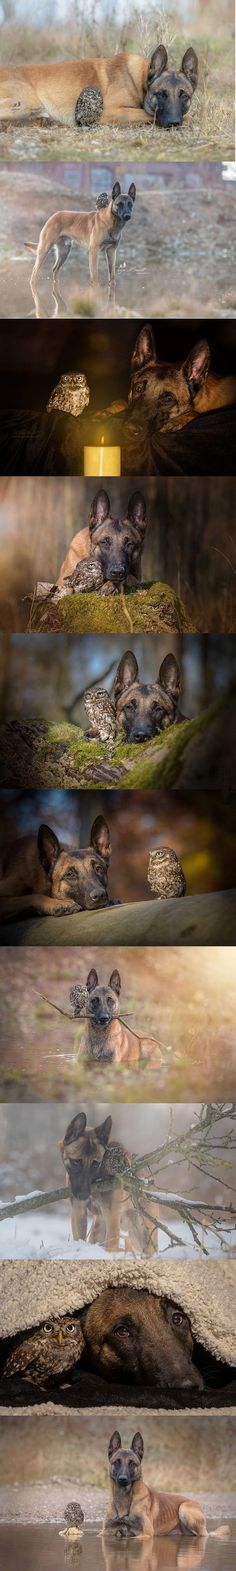 Unlikely animal friends!